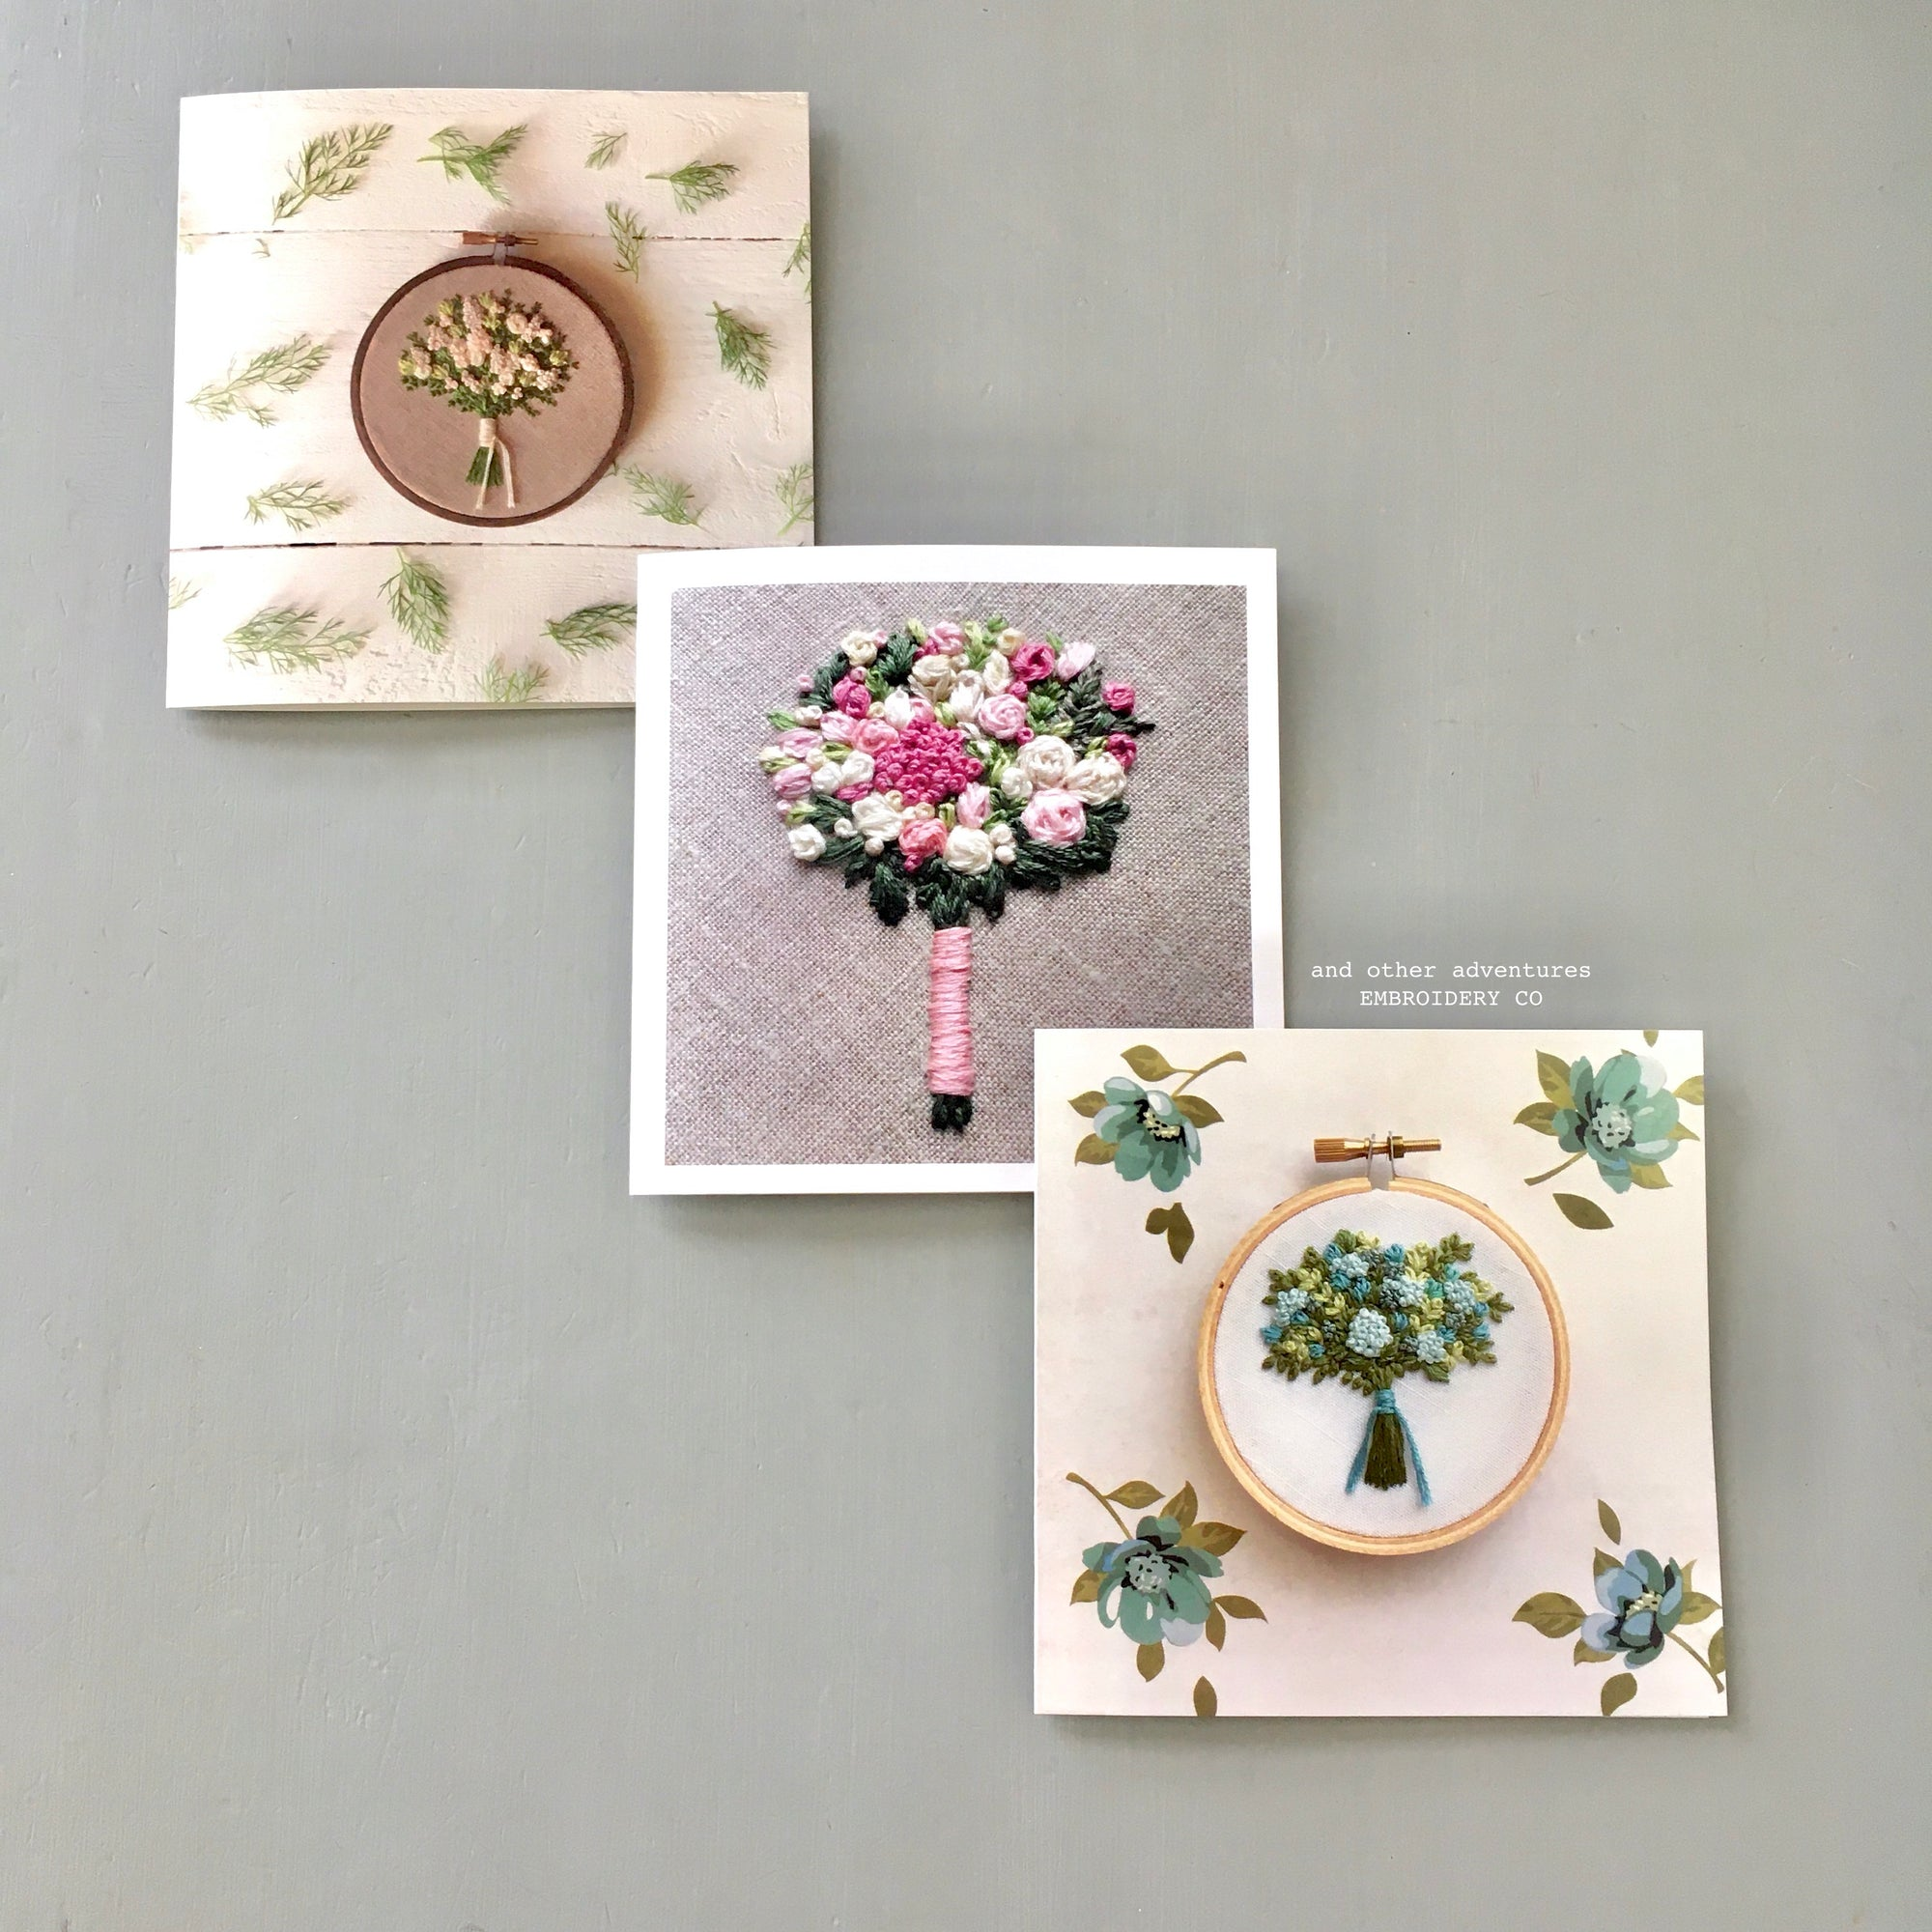 Embroidery Inspired Note Cards by And Other Adventures Embroidery Co